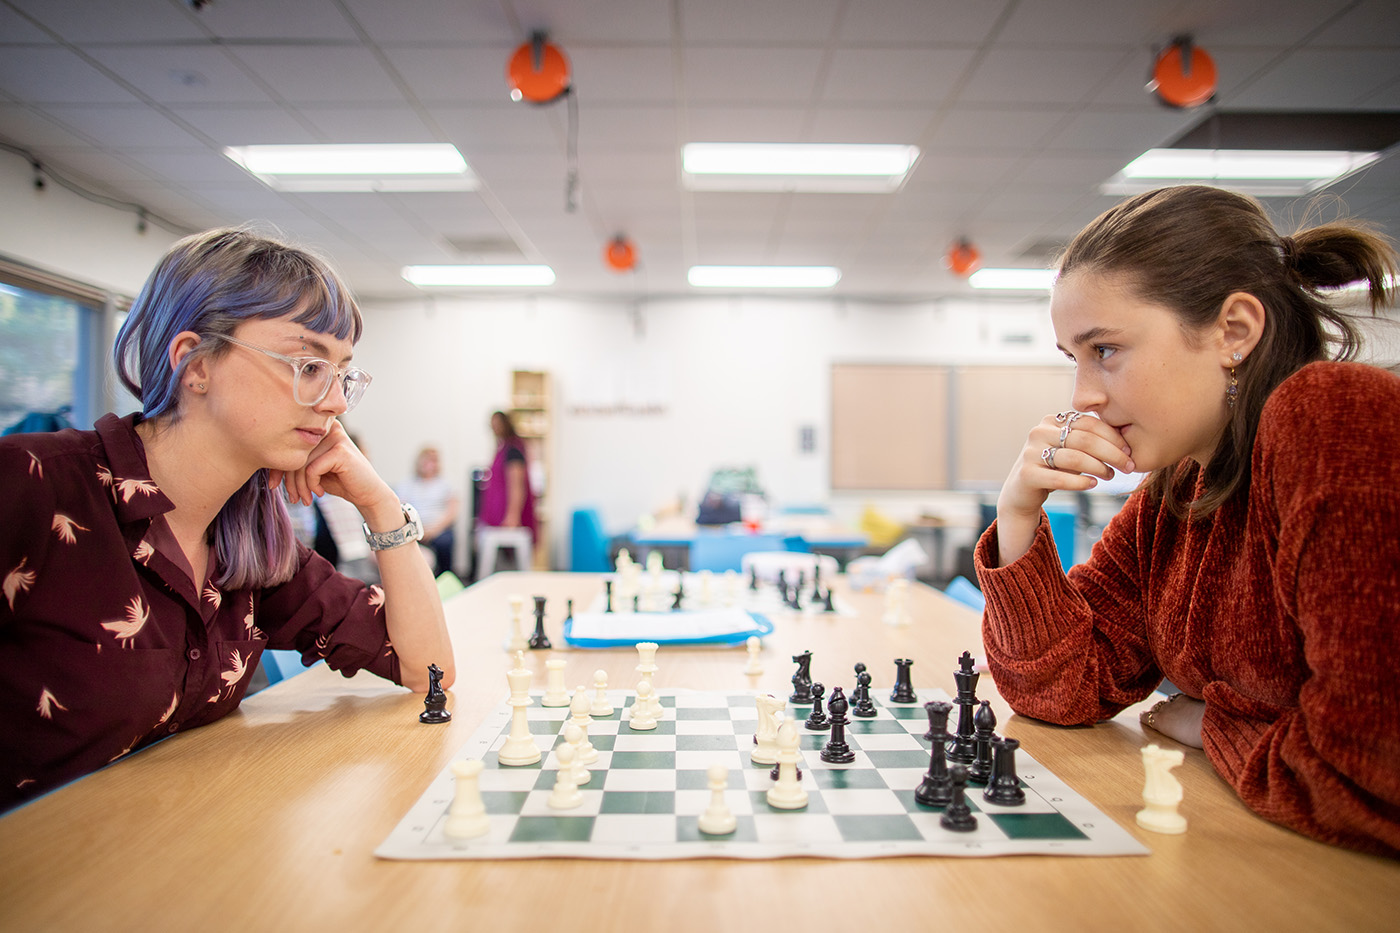 Mentor Sarah Weinstein sits across the table from a student. In between them is a chess board. Sarah stares at the board, thinking intently, while the student stares at Sarah.